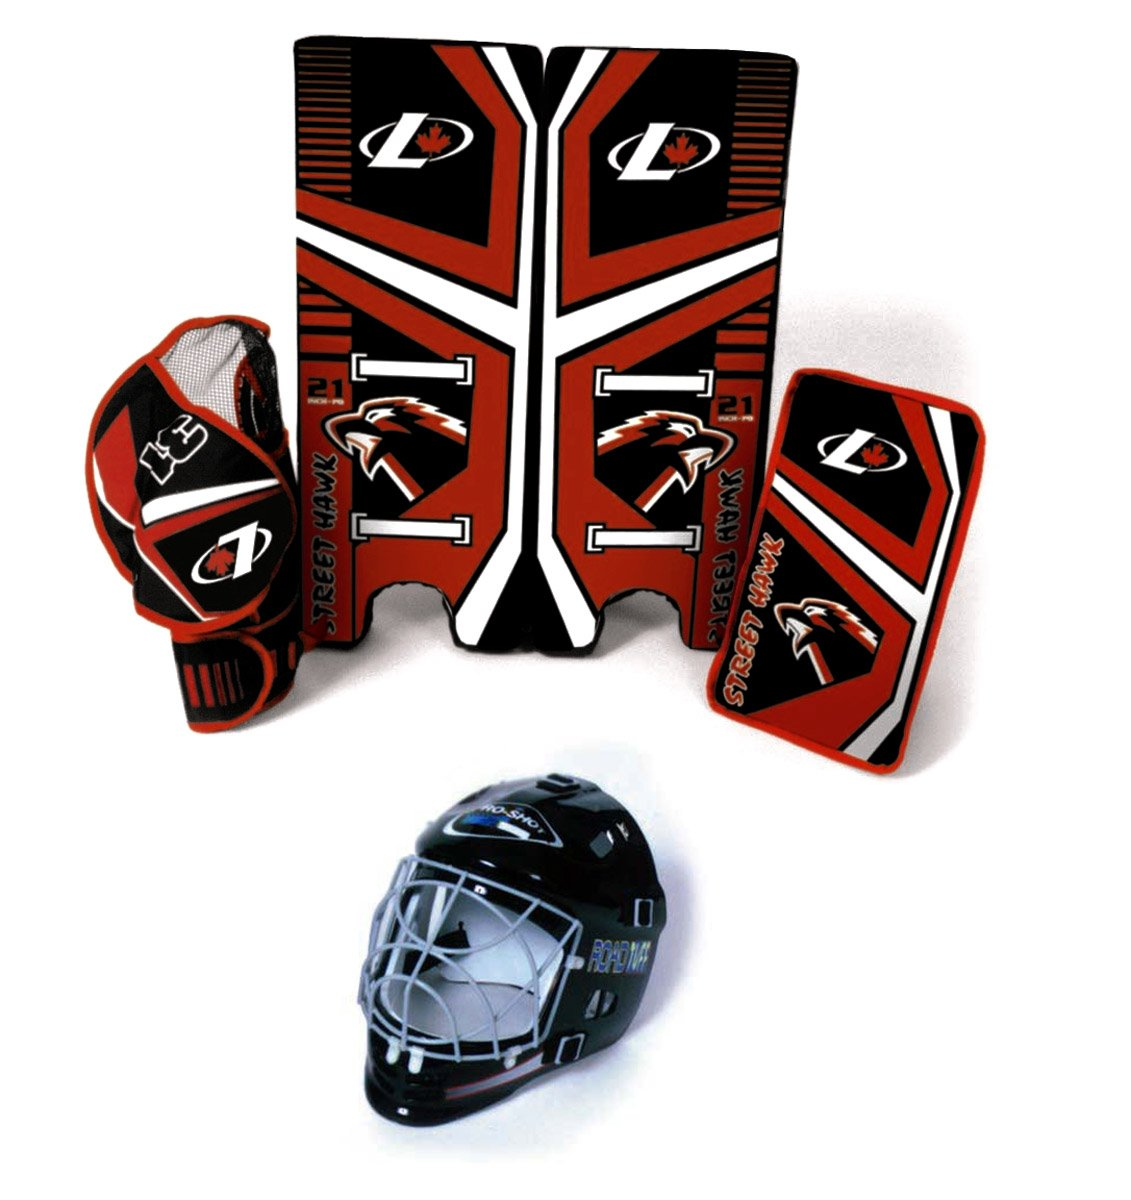 Freeman Industries Street Hockey Goalie Pad, Glove and Mask Set FI-1225-GM Goalie Gear